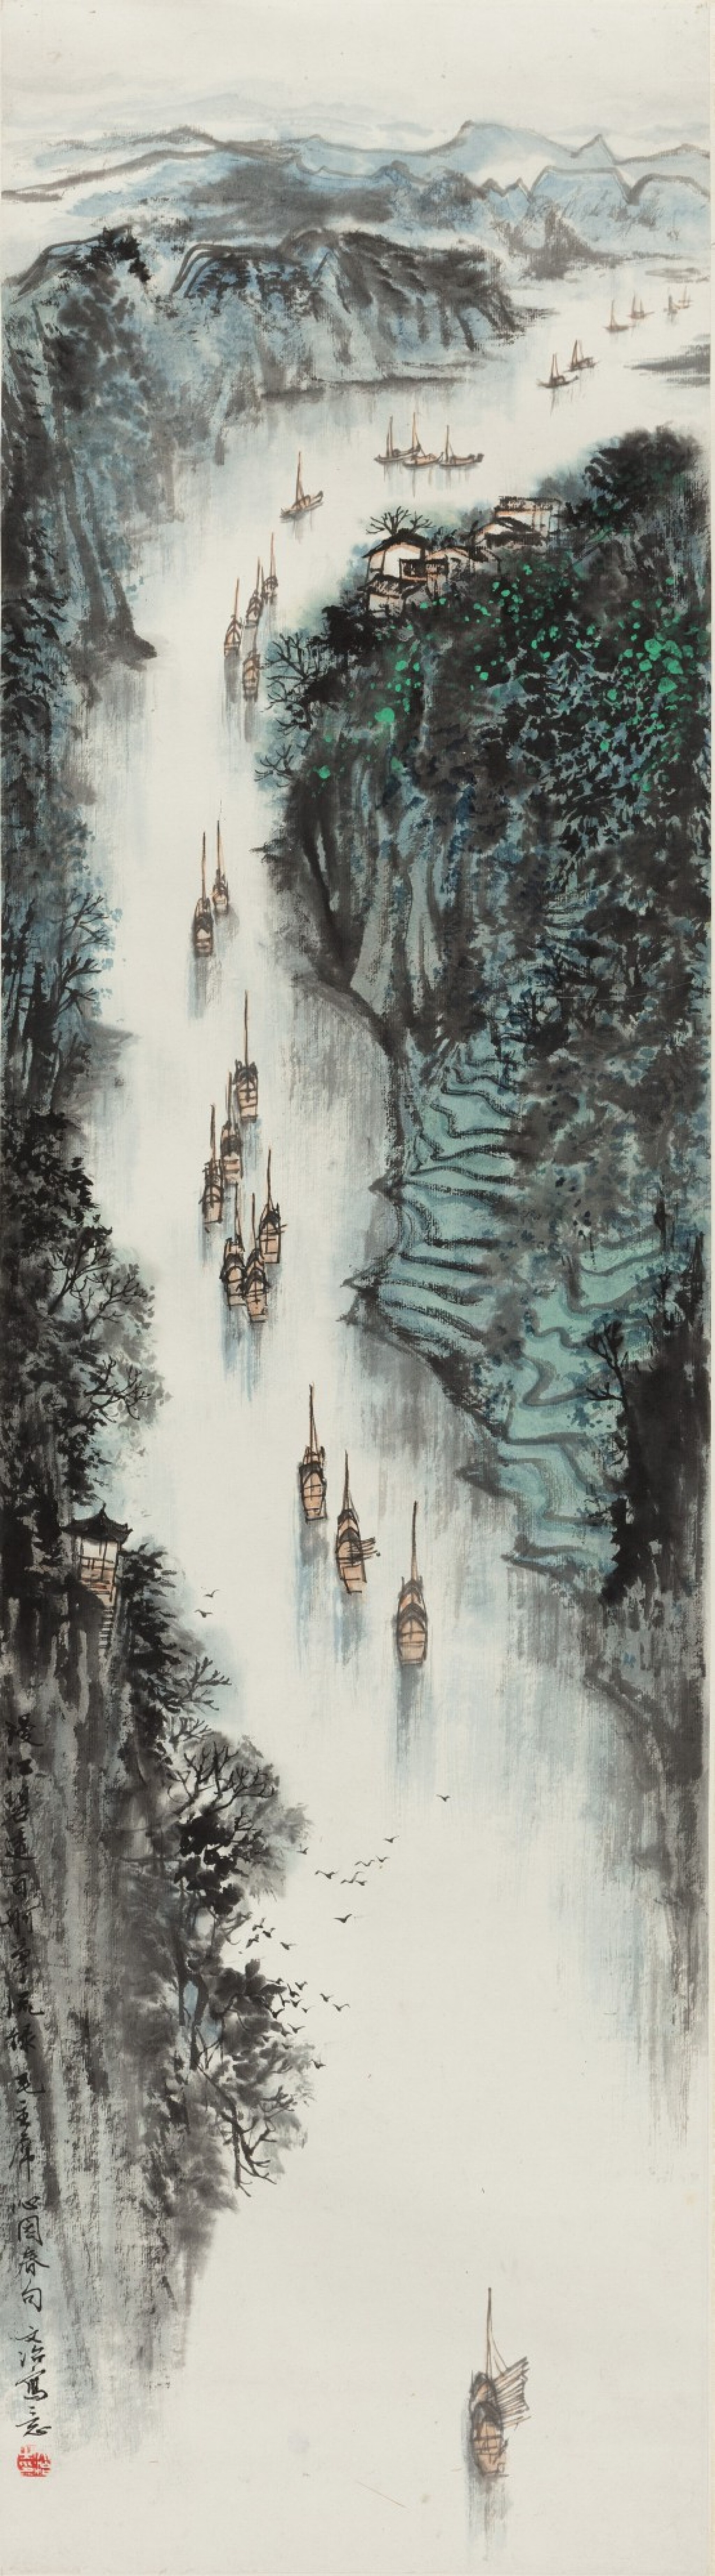 View 1 of Lot 138. Song Wenzhi (1919-1999) Naviguer sur la rivière | 宋文治 百舸争流圖 | Song Wenzhi (1919-1999) Sailing through the Stream.